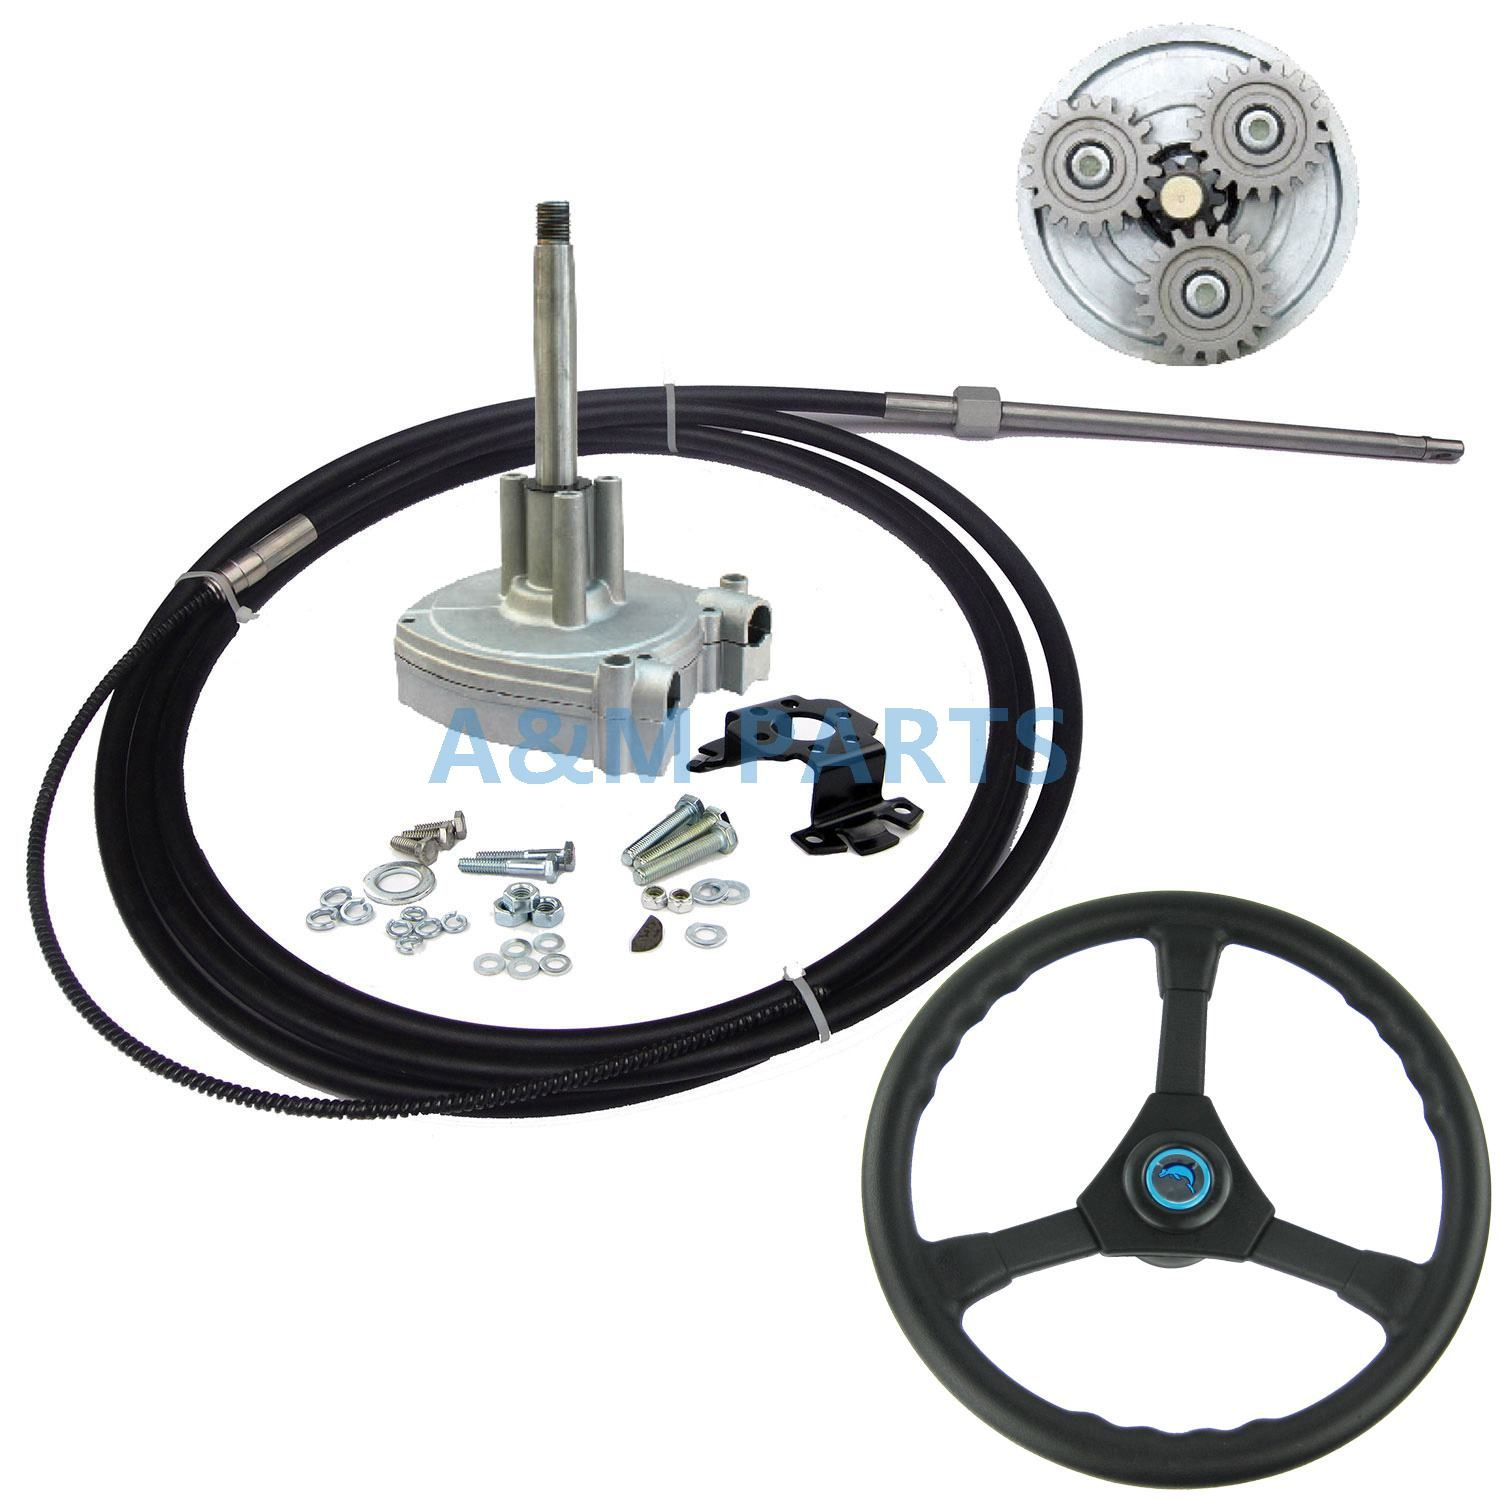 12FT Planetary Gear Marine Outboard Mechanical Steering System Helm With Boat Steering Cable & Wheel